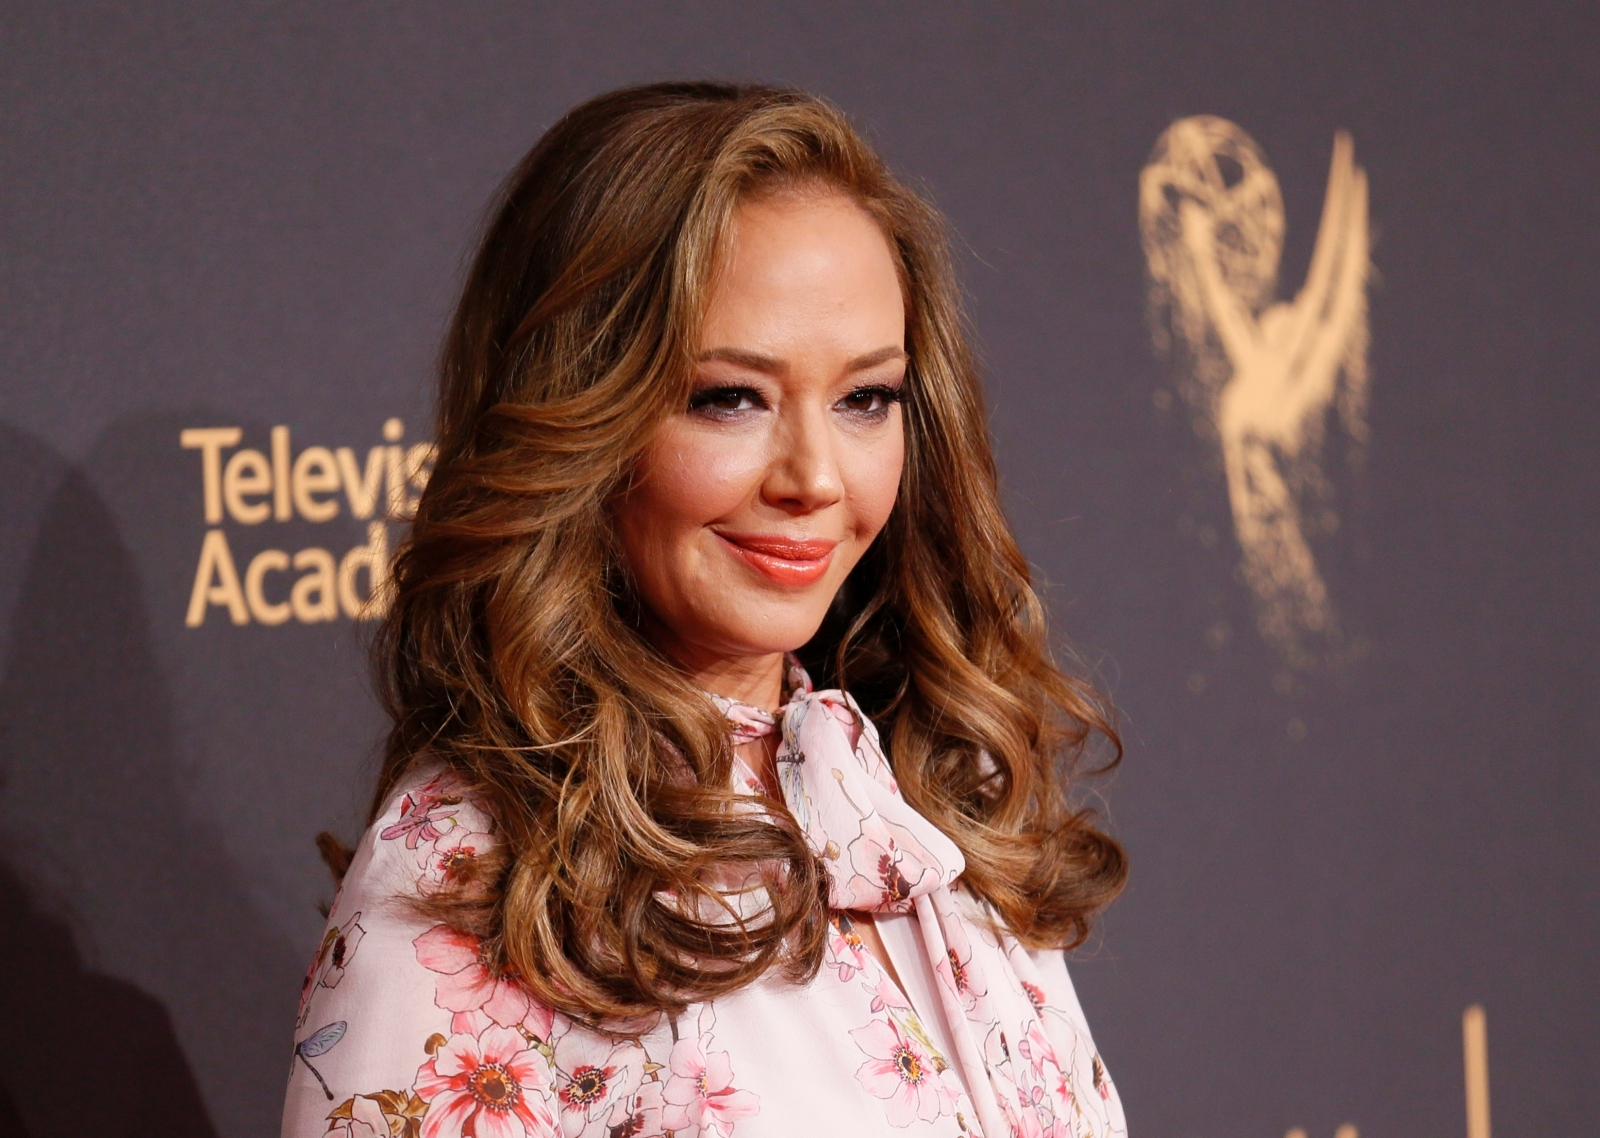 Leah Remini at the 2017 Creative Arts Emmy Awards in Los Angeles, California on 9 September 2017